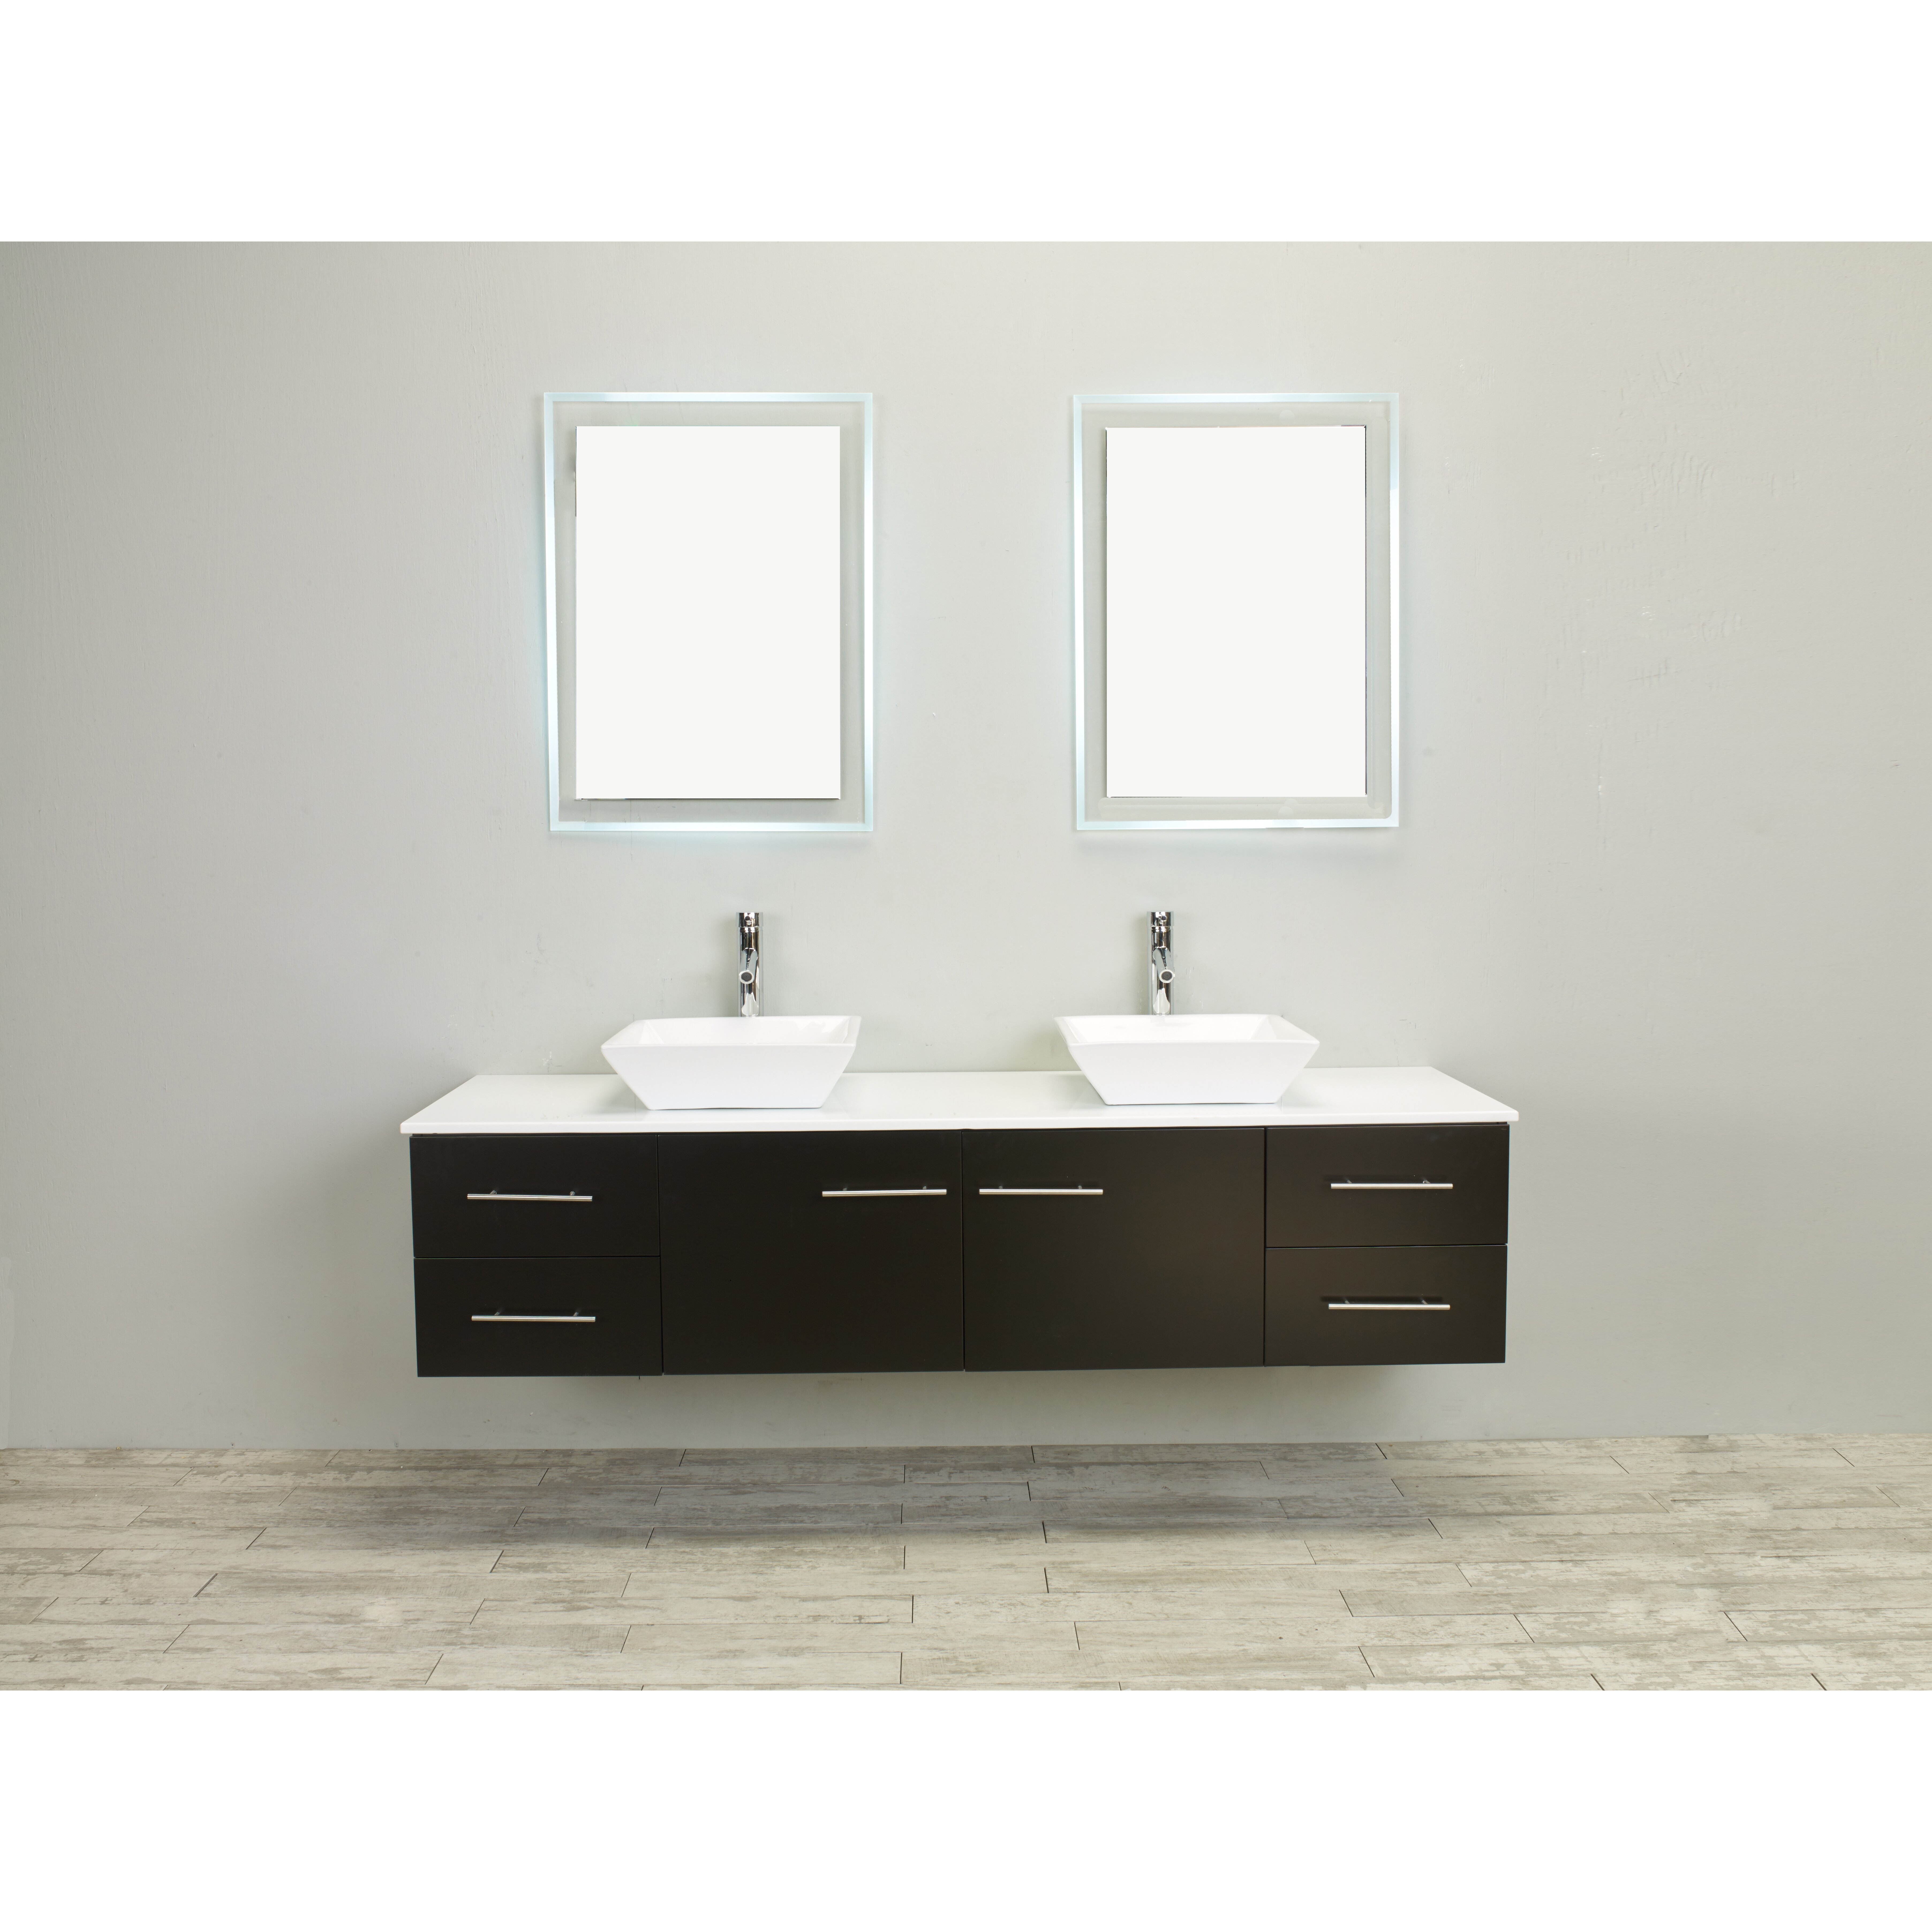 Eviva totti wave 72 double sink espresso modern bathroom - Modern double sink bathroom vanities ...